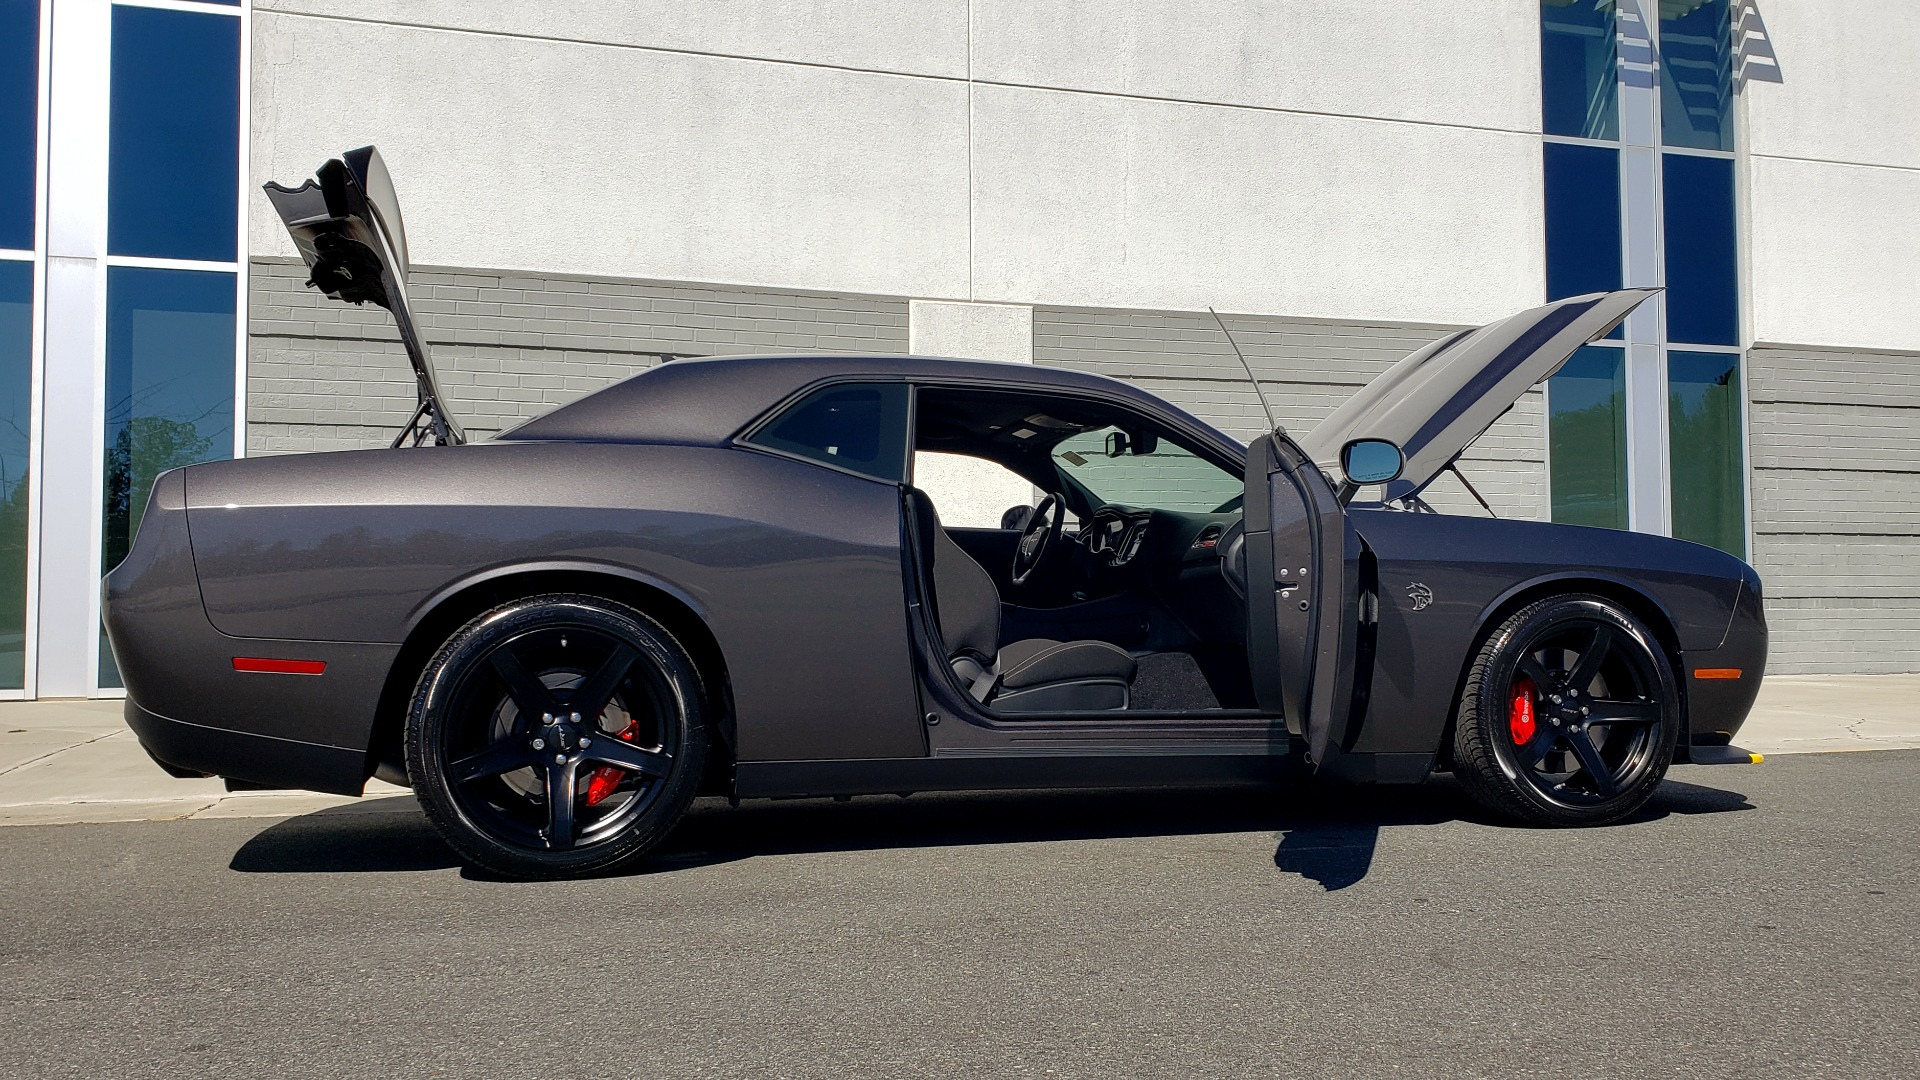 Used 2020 Dodge CHALLENGER SRT HELLCAT (717HP) / NAV / AUTO / CLOTH / REARVIEW / LOW MILES for sale Sold at Formula Imports in Charlotte NC 28227 14